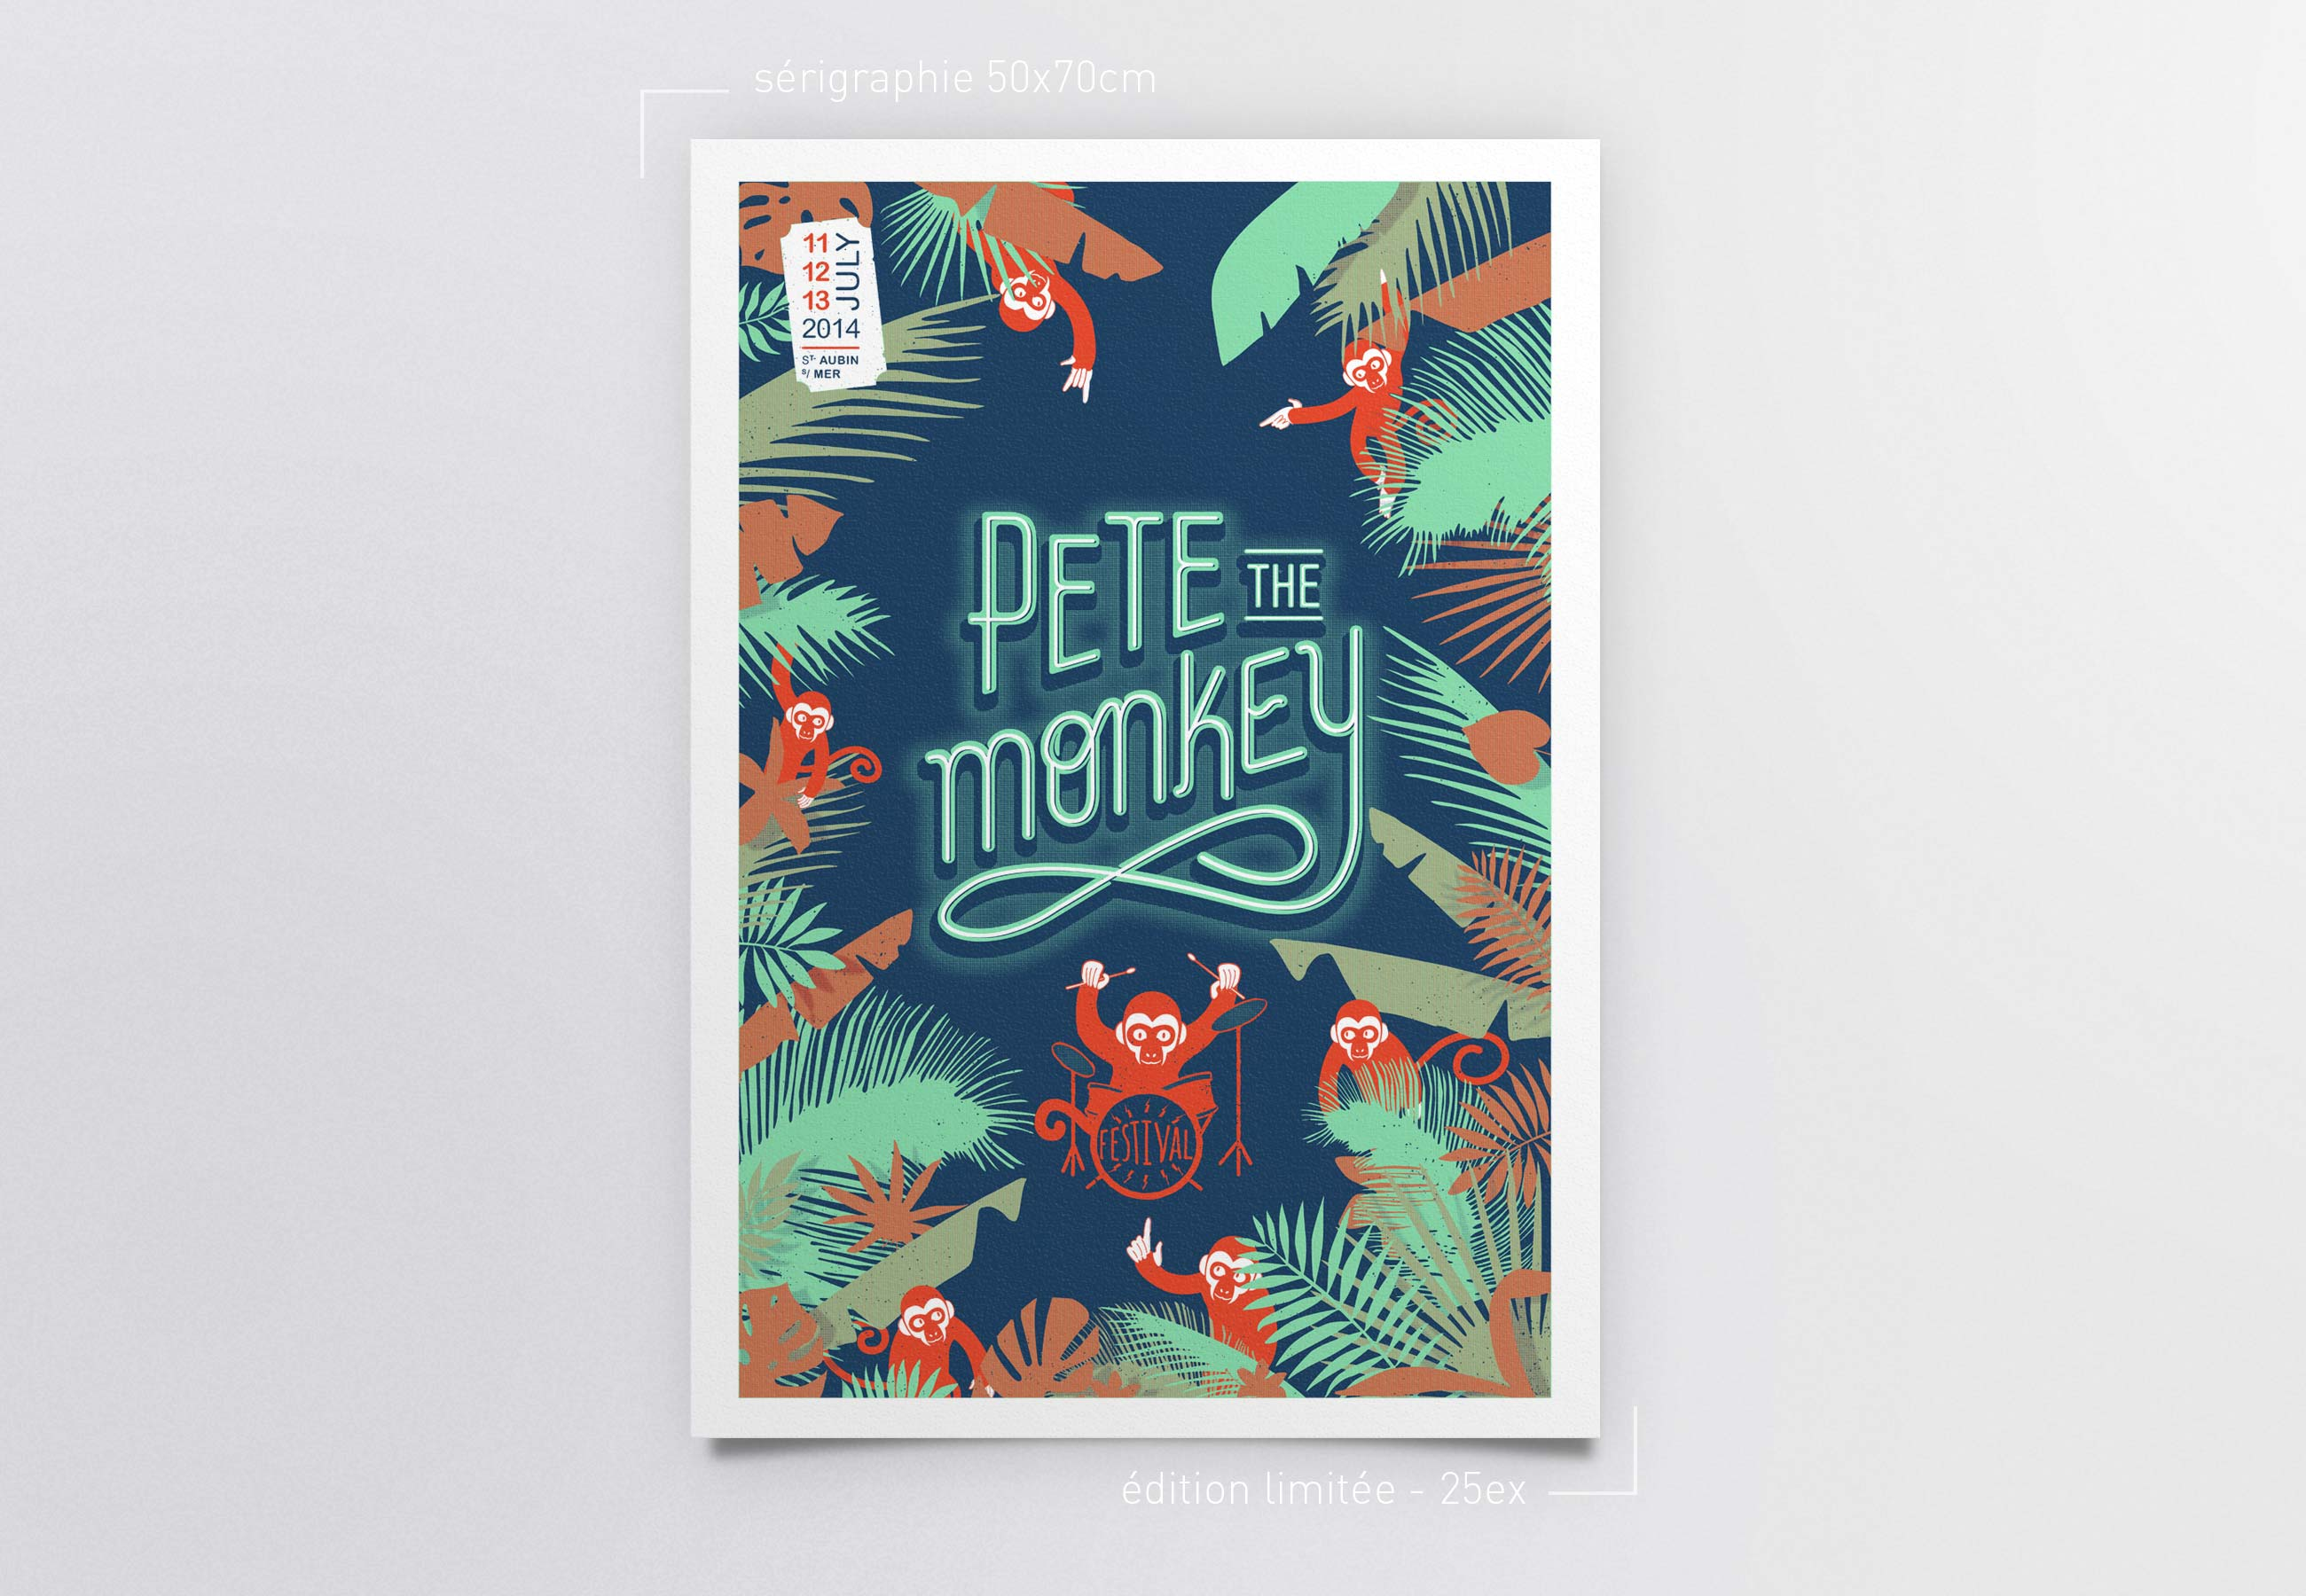 pete_the_monkey_10_parallele_graphique